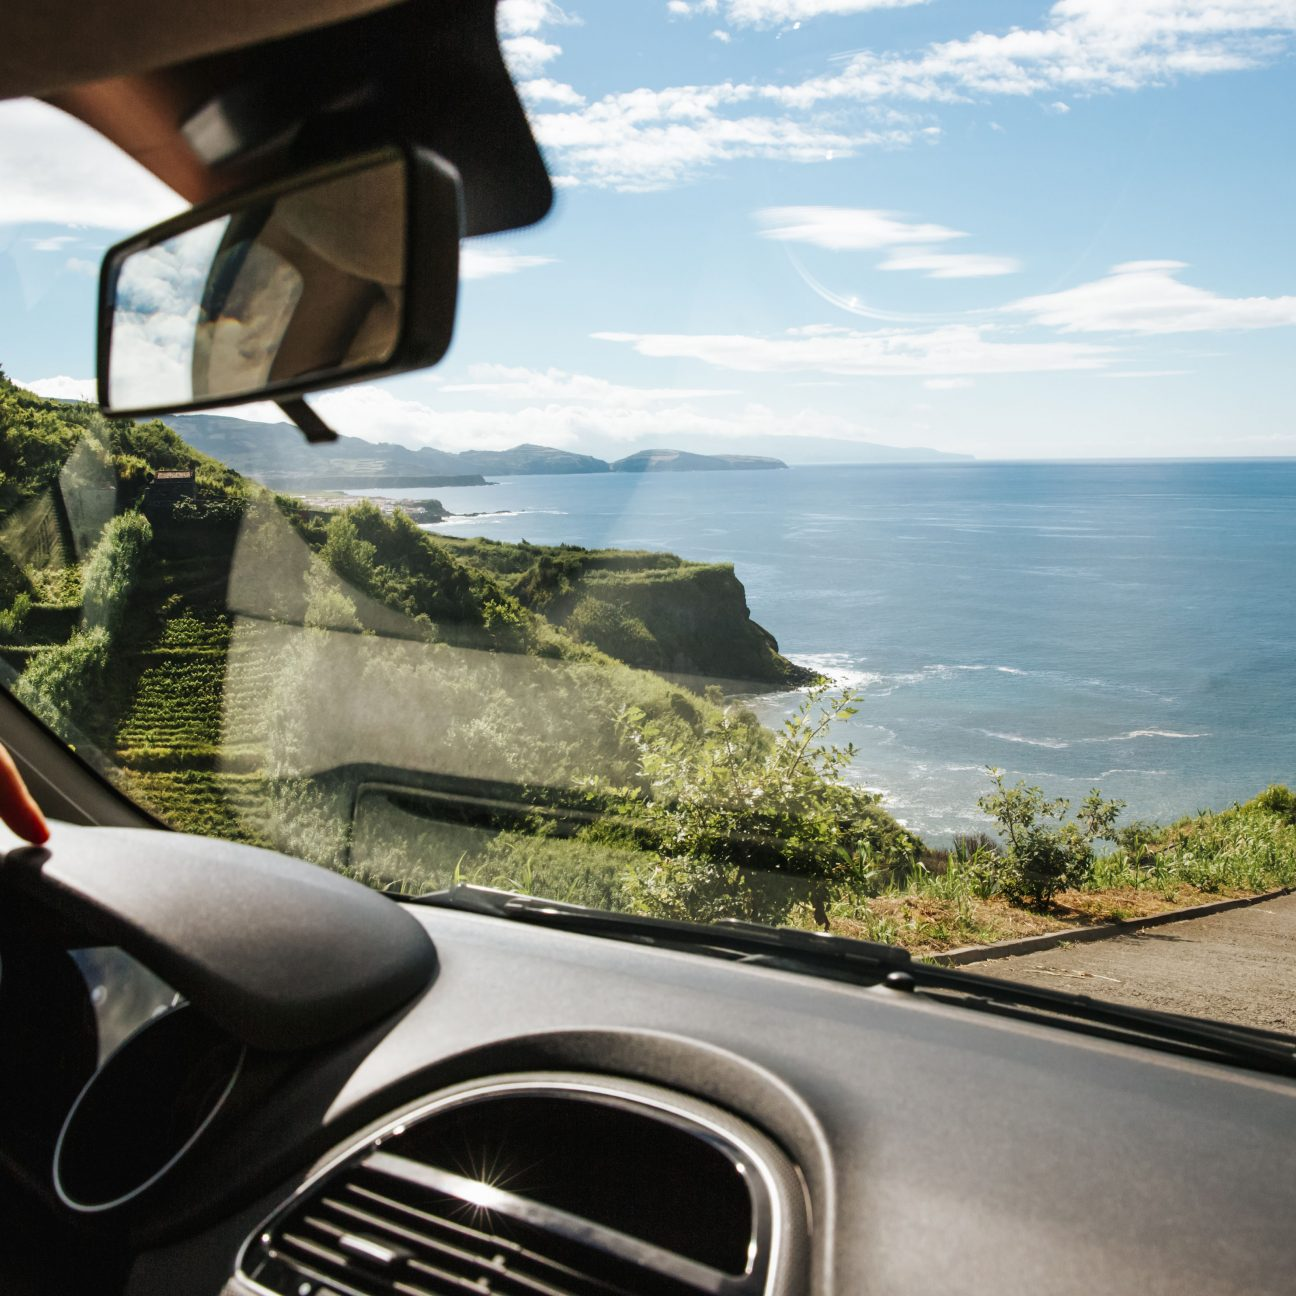 car with a view of the ocean